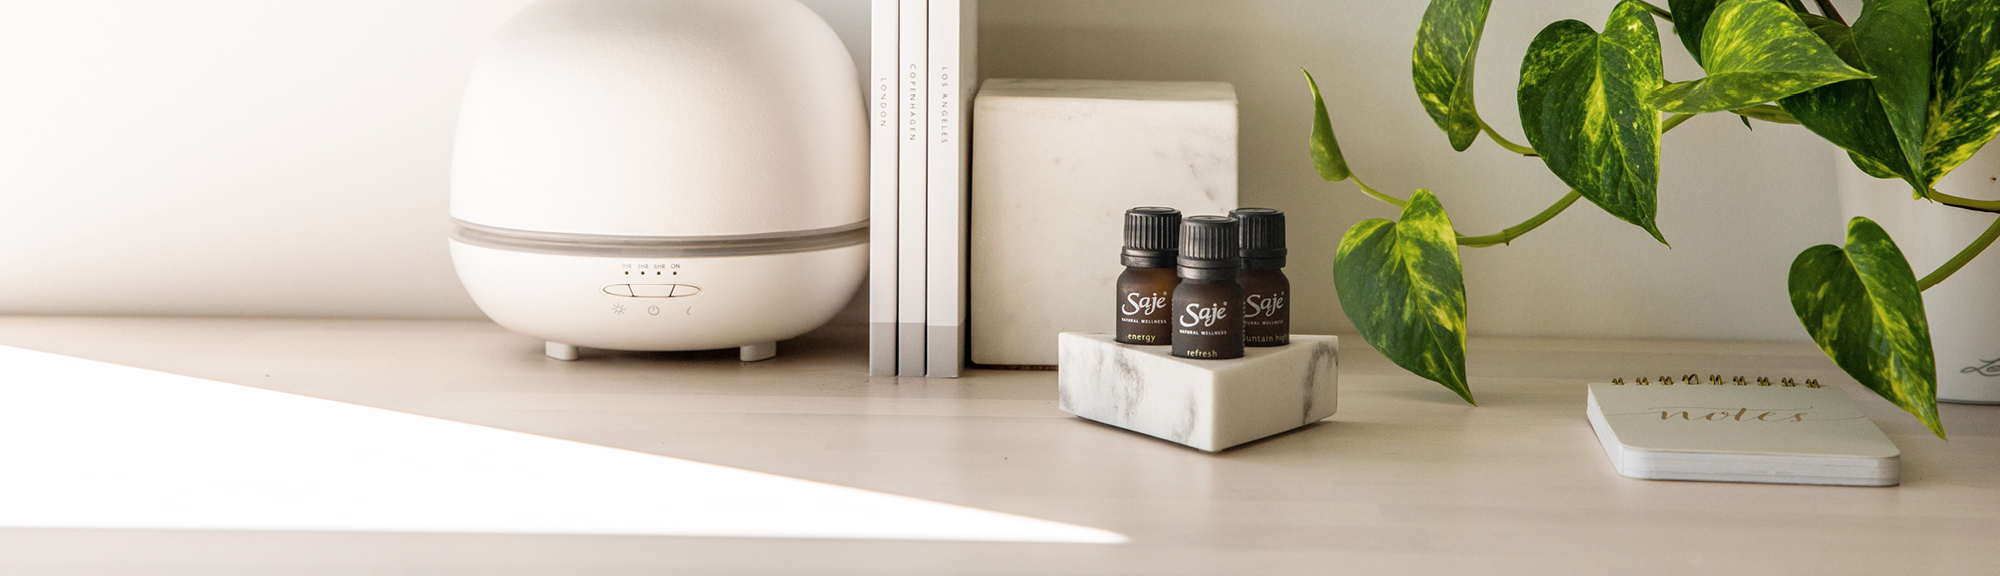 How To Choose A Diffuser Blend